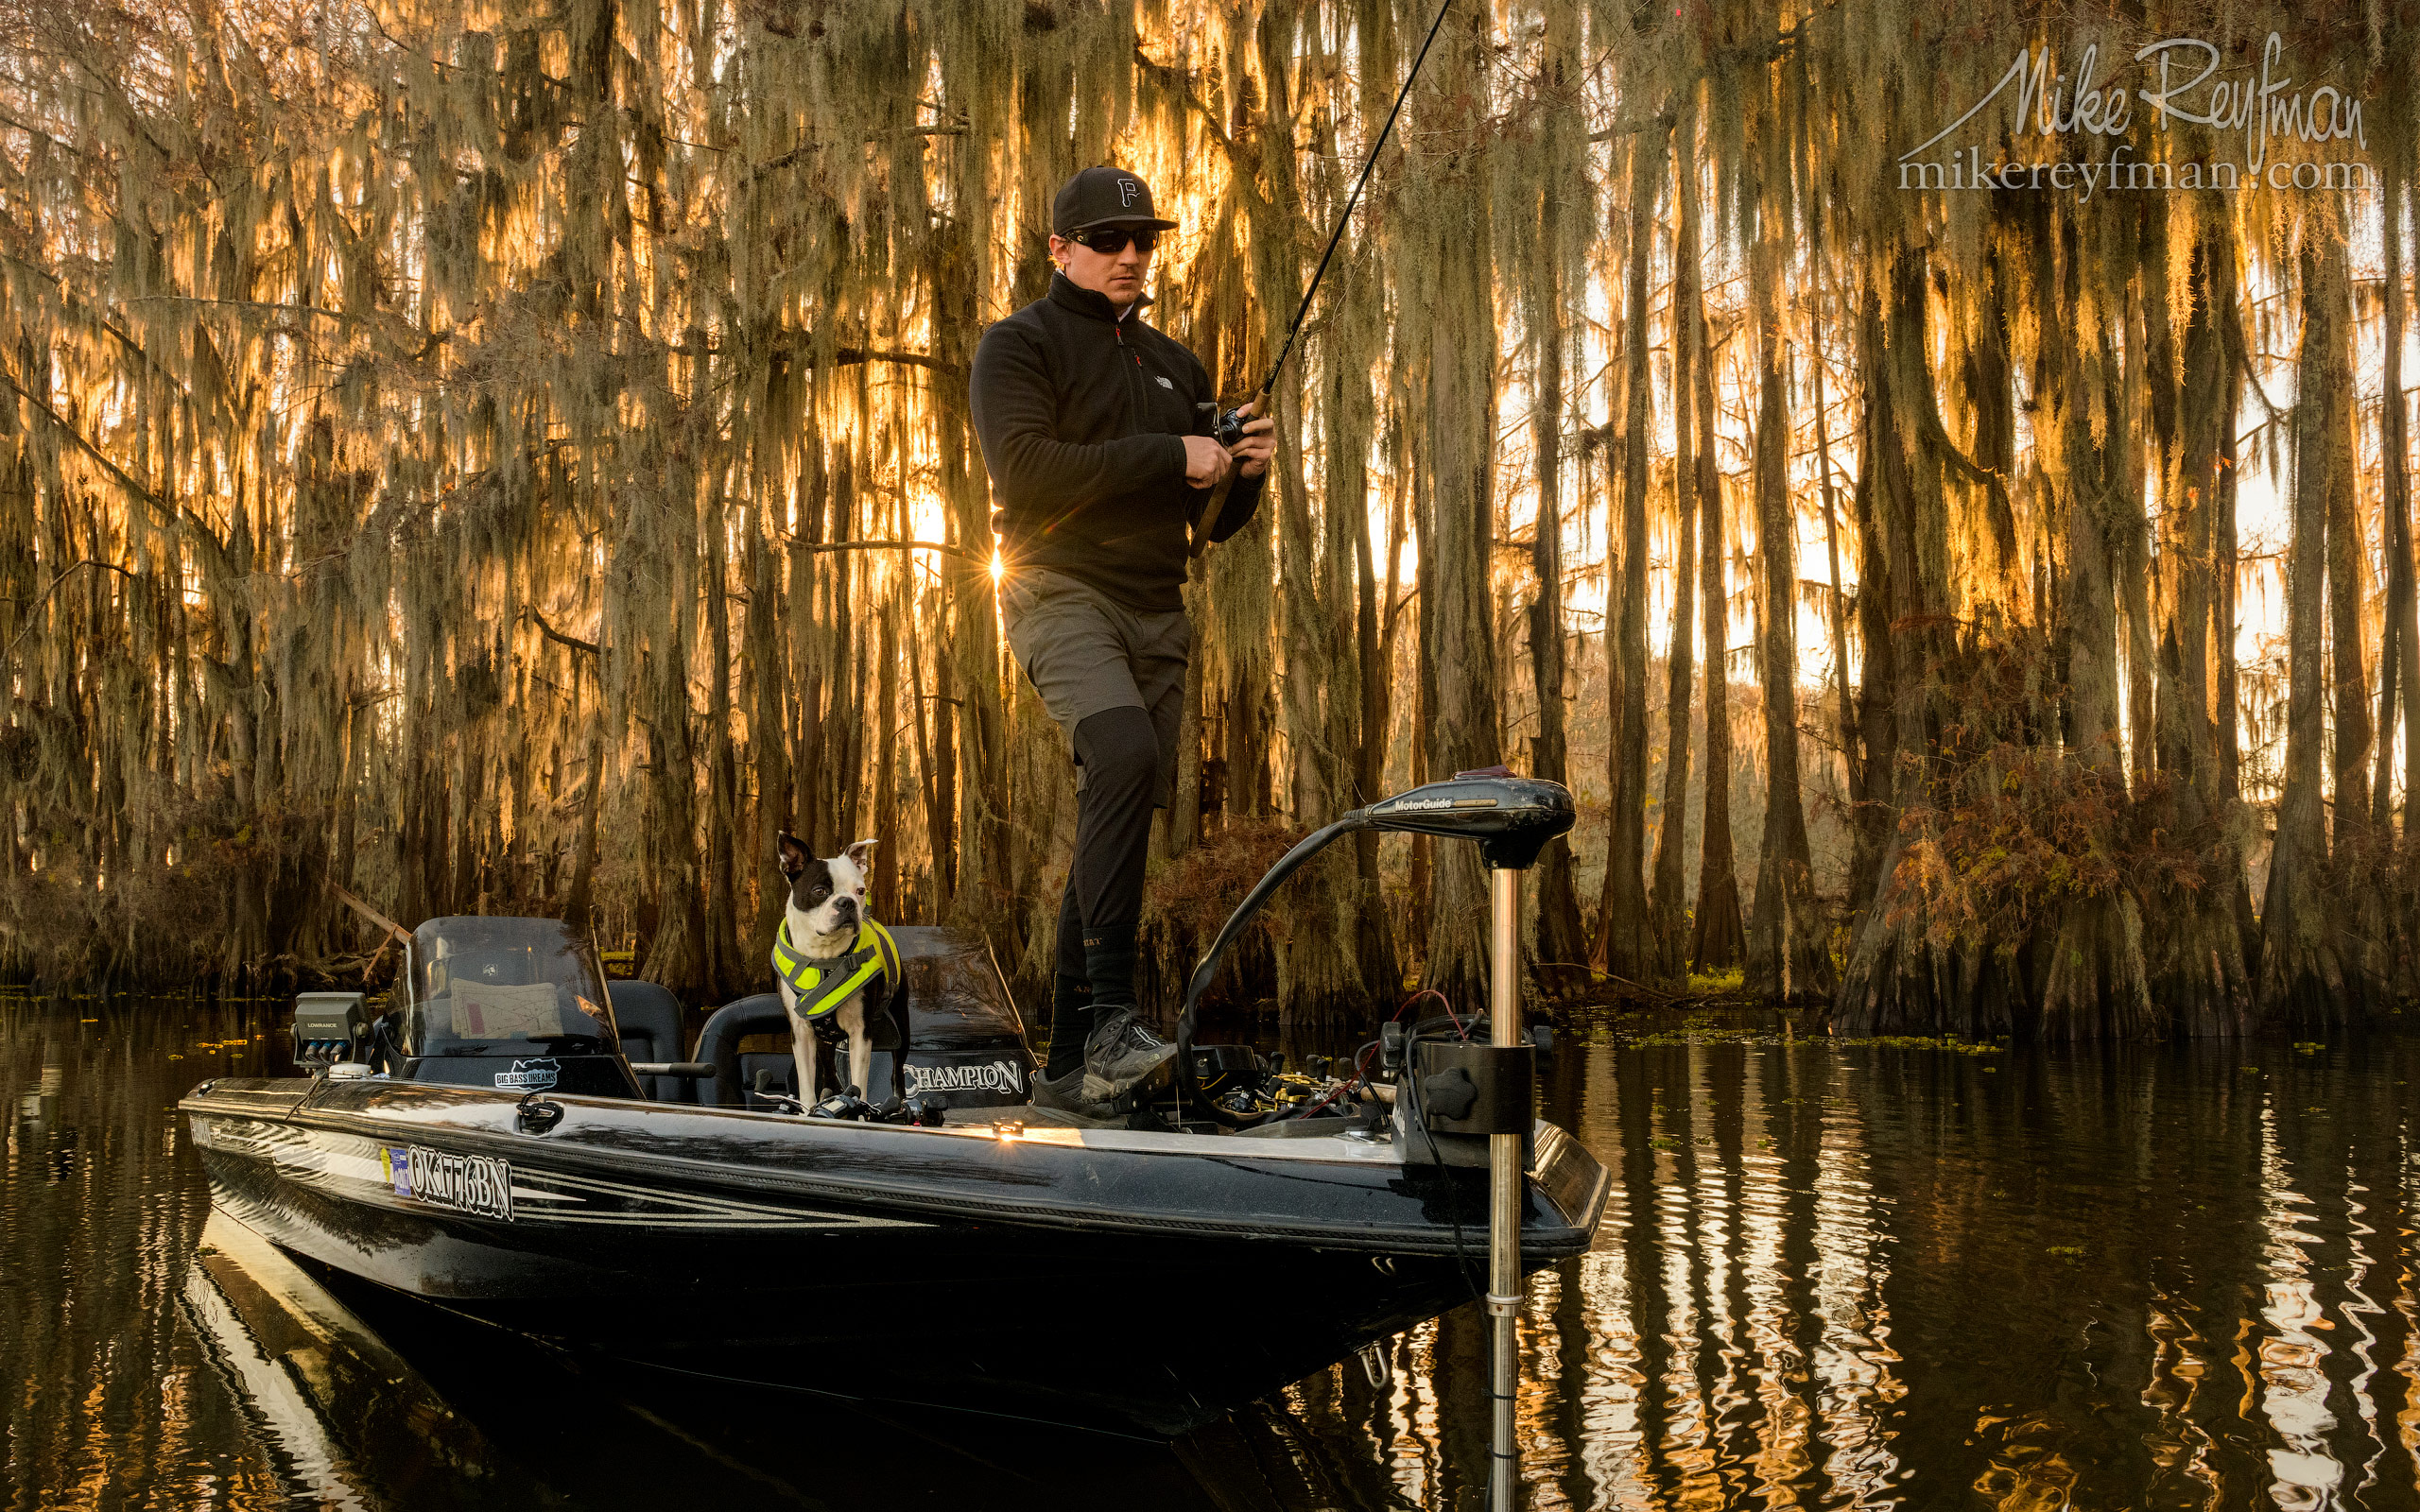 Fisherman in Bald Cypress Trees alley. Government Ditch, Lake Caddo, Texas, US 048-LT1-50A3753.jpg - Bold Cypress and Tupelo Trees in the swamps of Atchafalaya River Basin. Caddo, Martin and Fousse Lakes. Texas/Louisiana, USA. - Mike Reyfman Photography